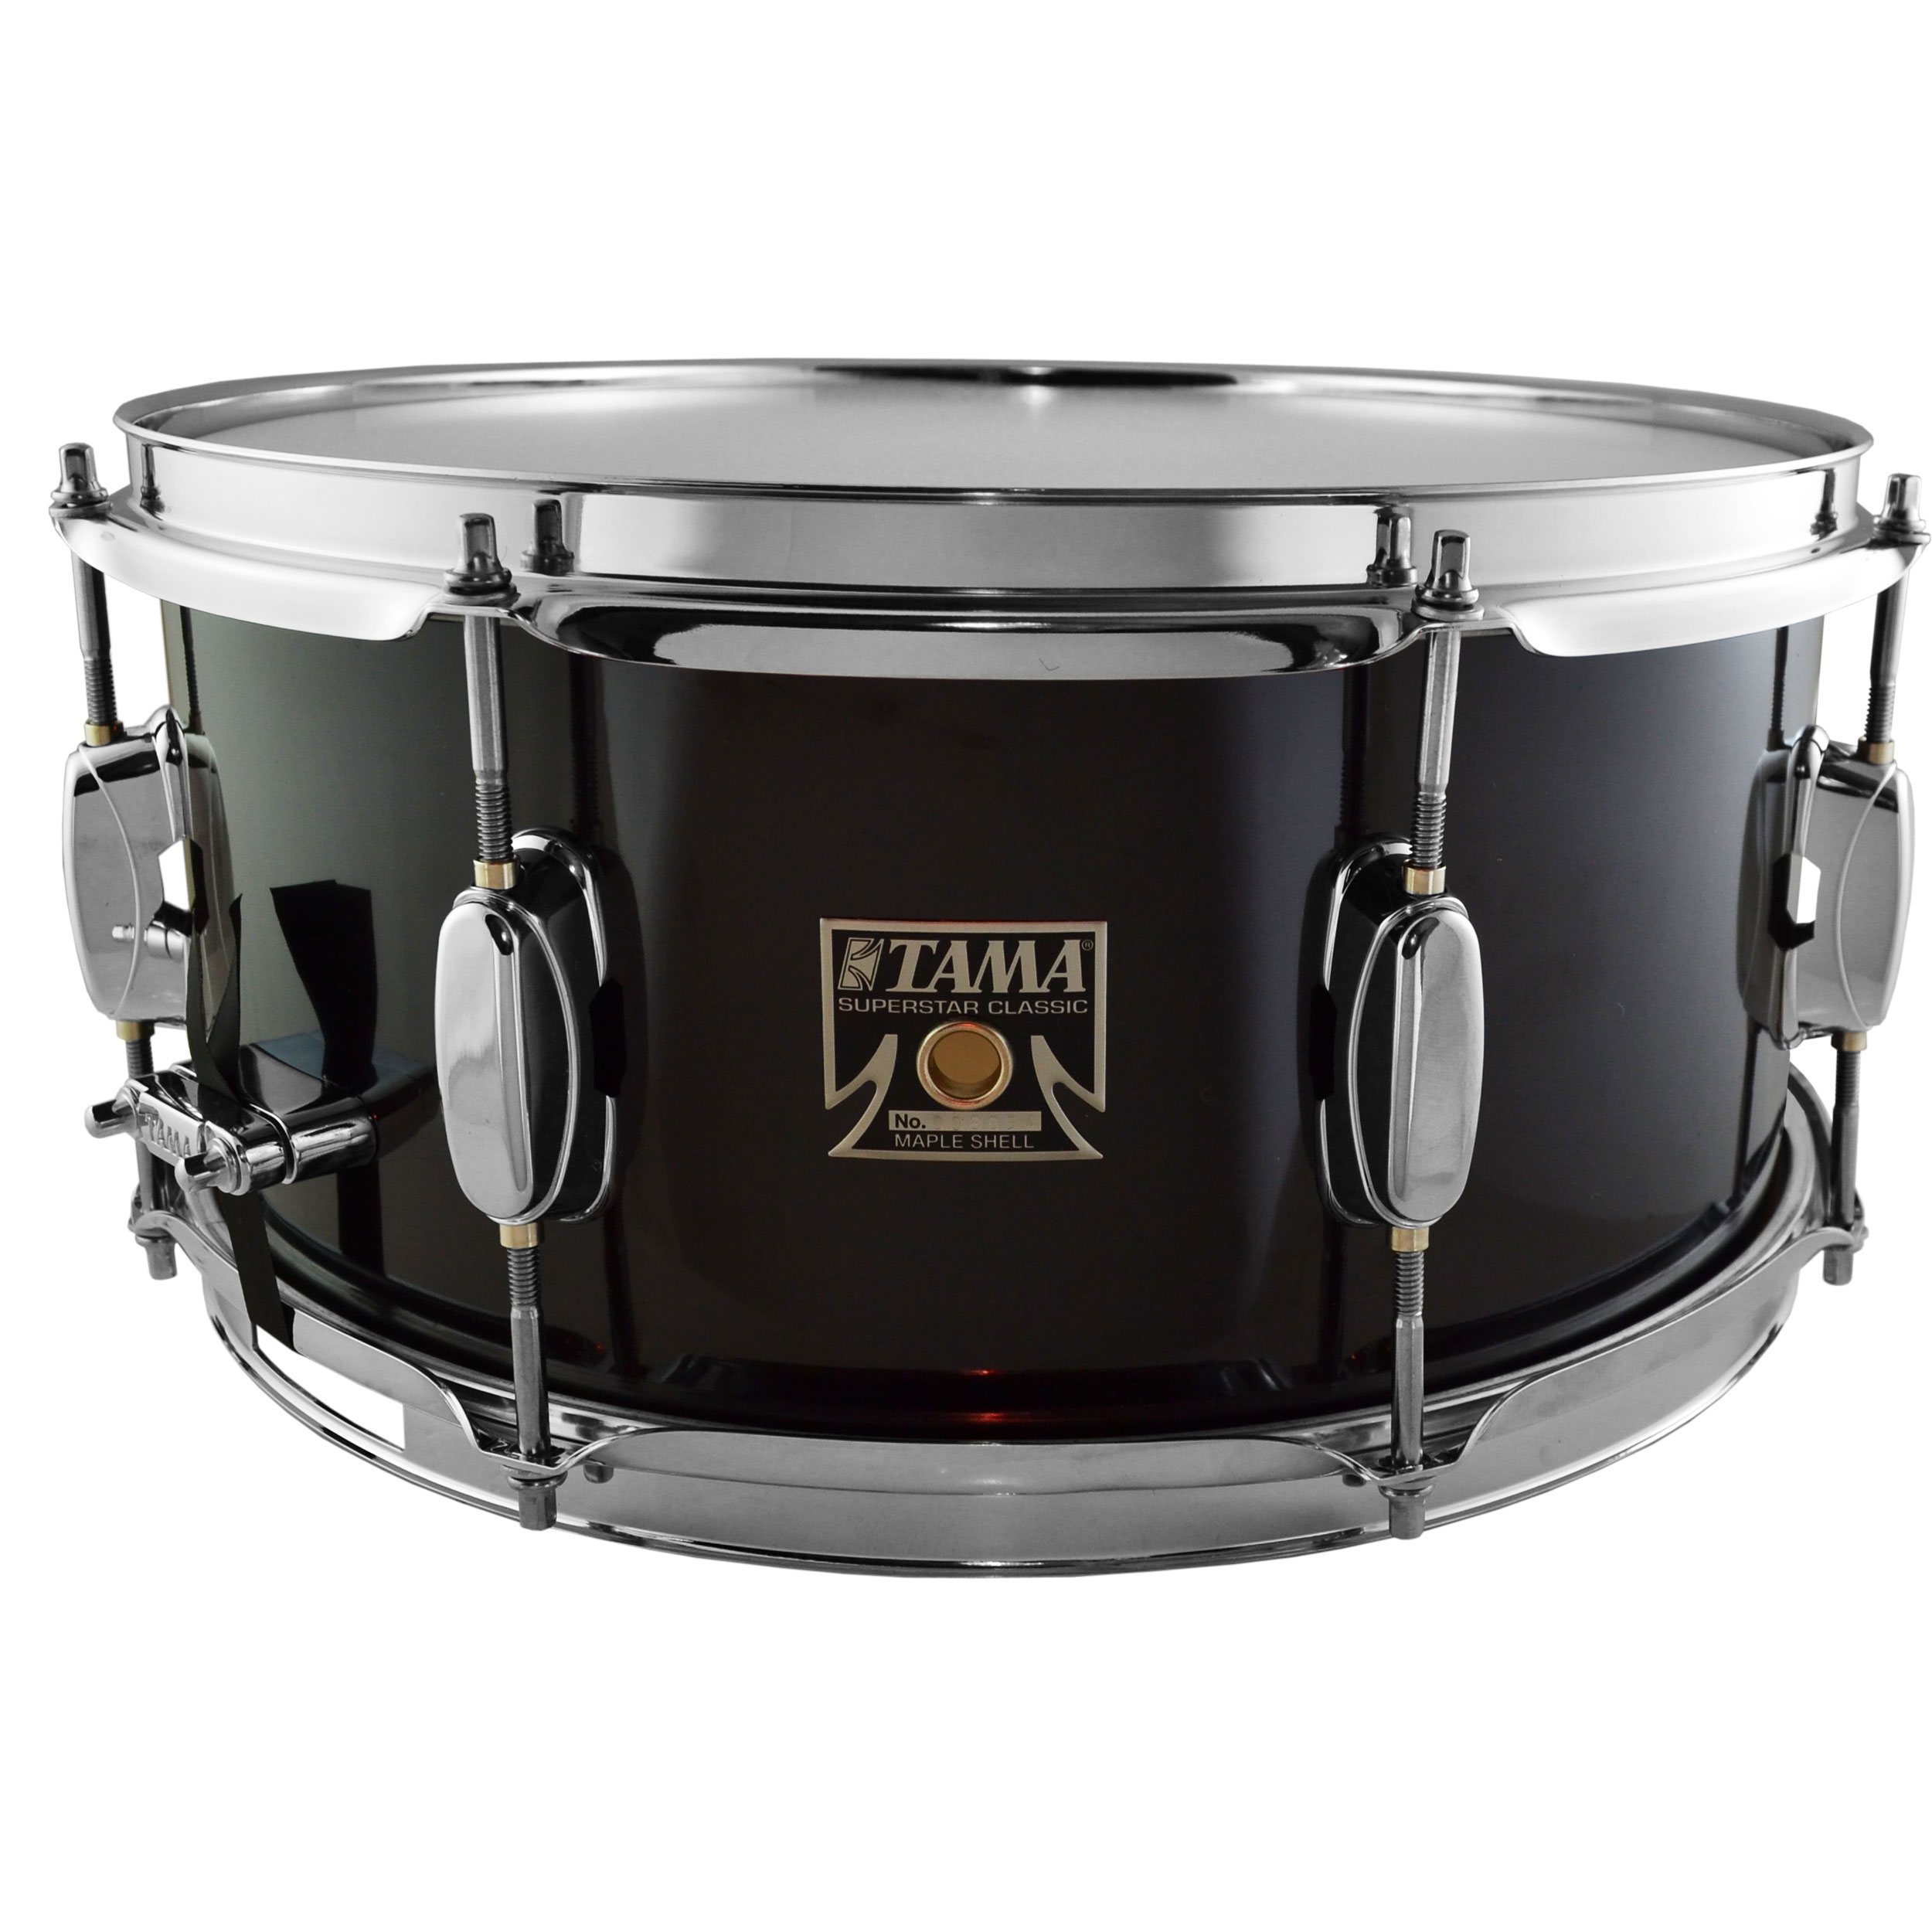 "Tama 6.5"" x 14"" Superstar Classic Snare Drum"